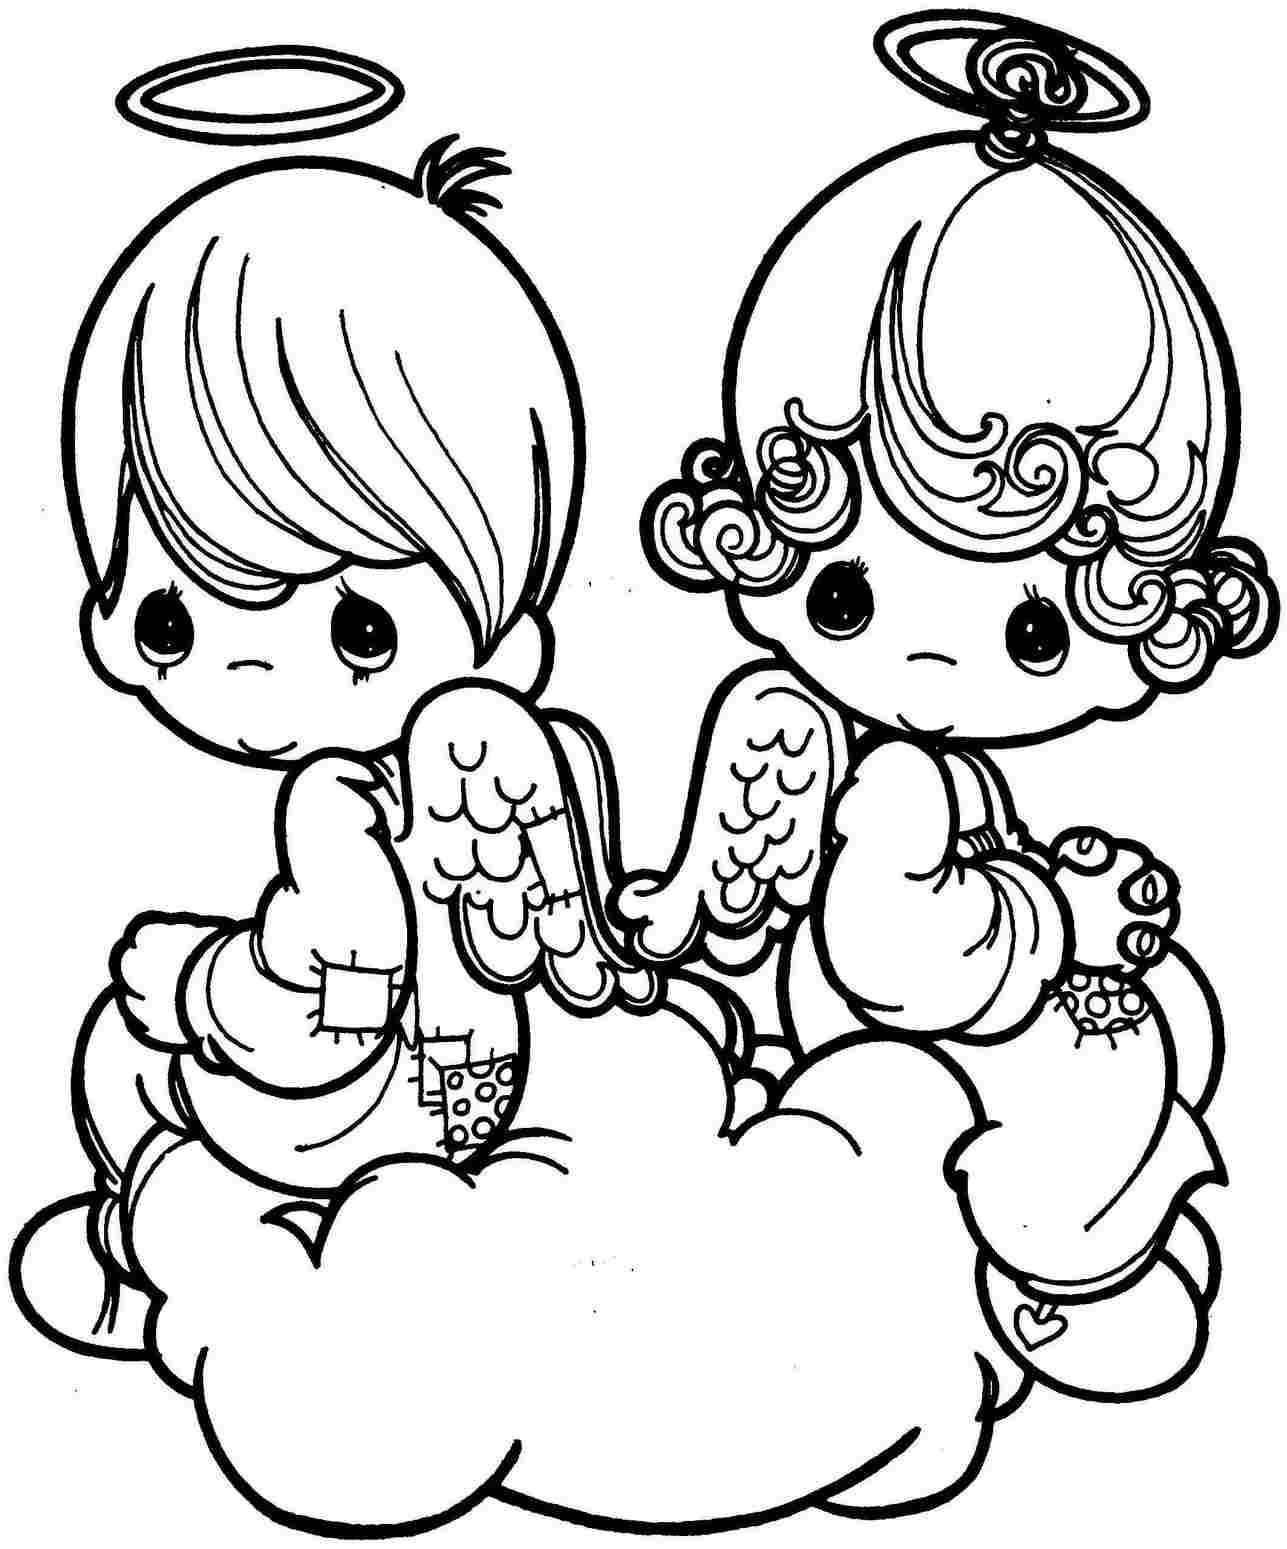 Free printable coloring pages for valentines day - Free Printable Valentines Day Coloring Pages